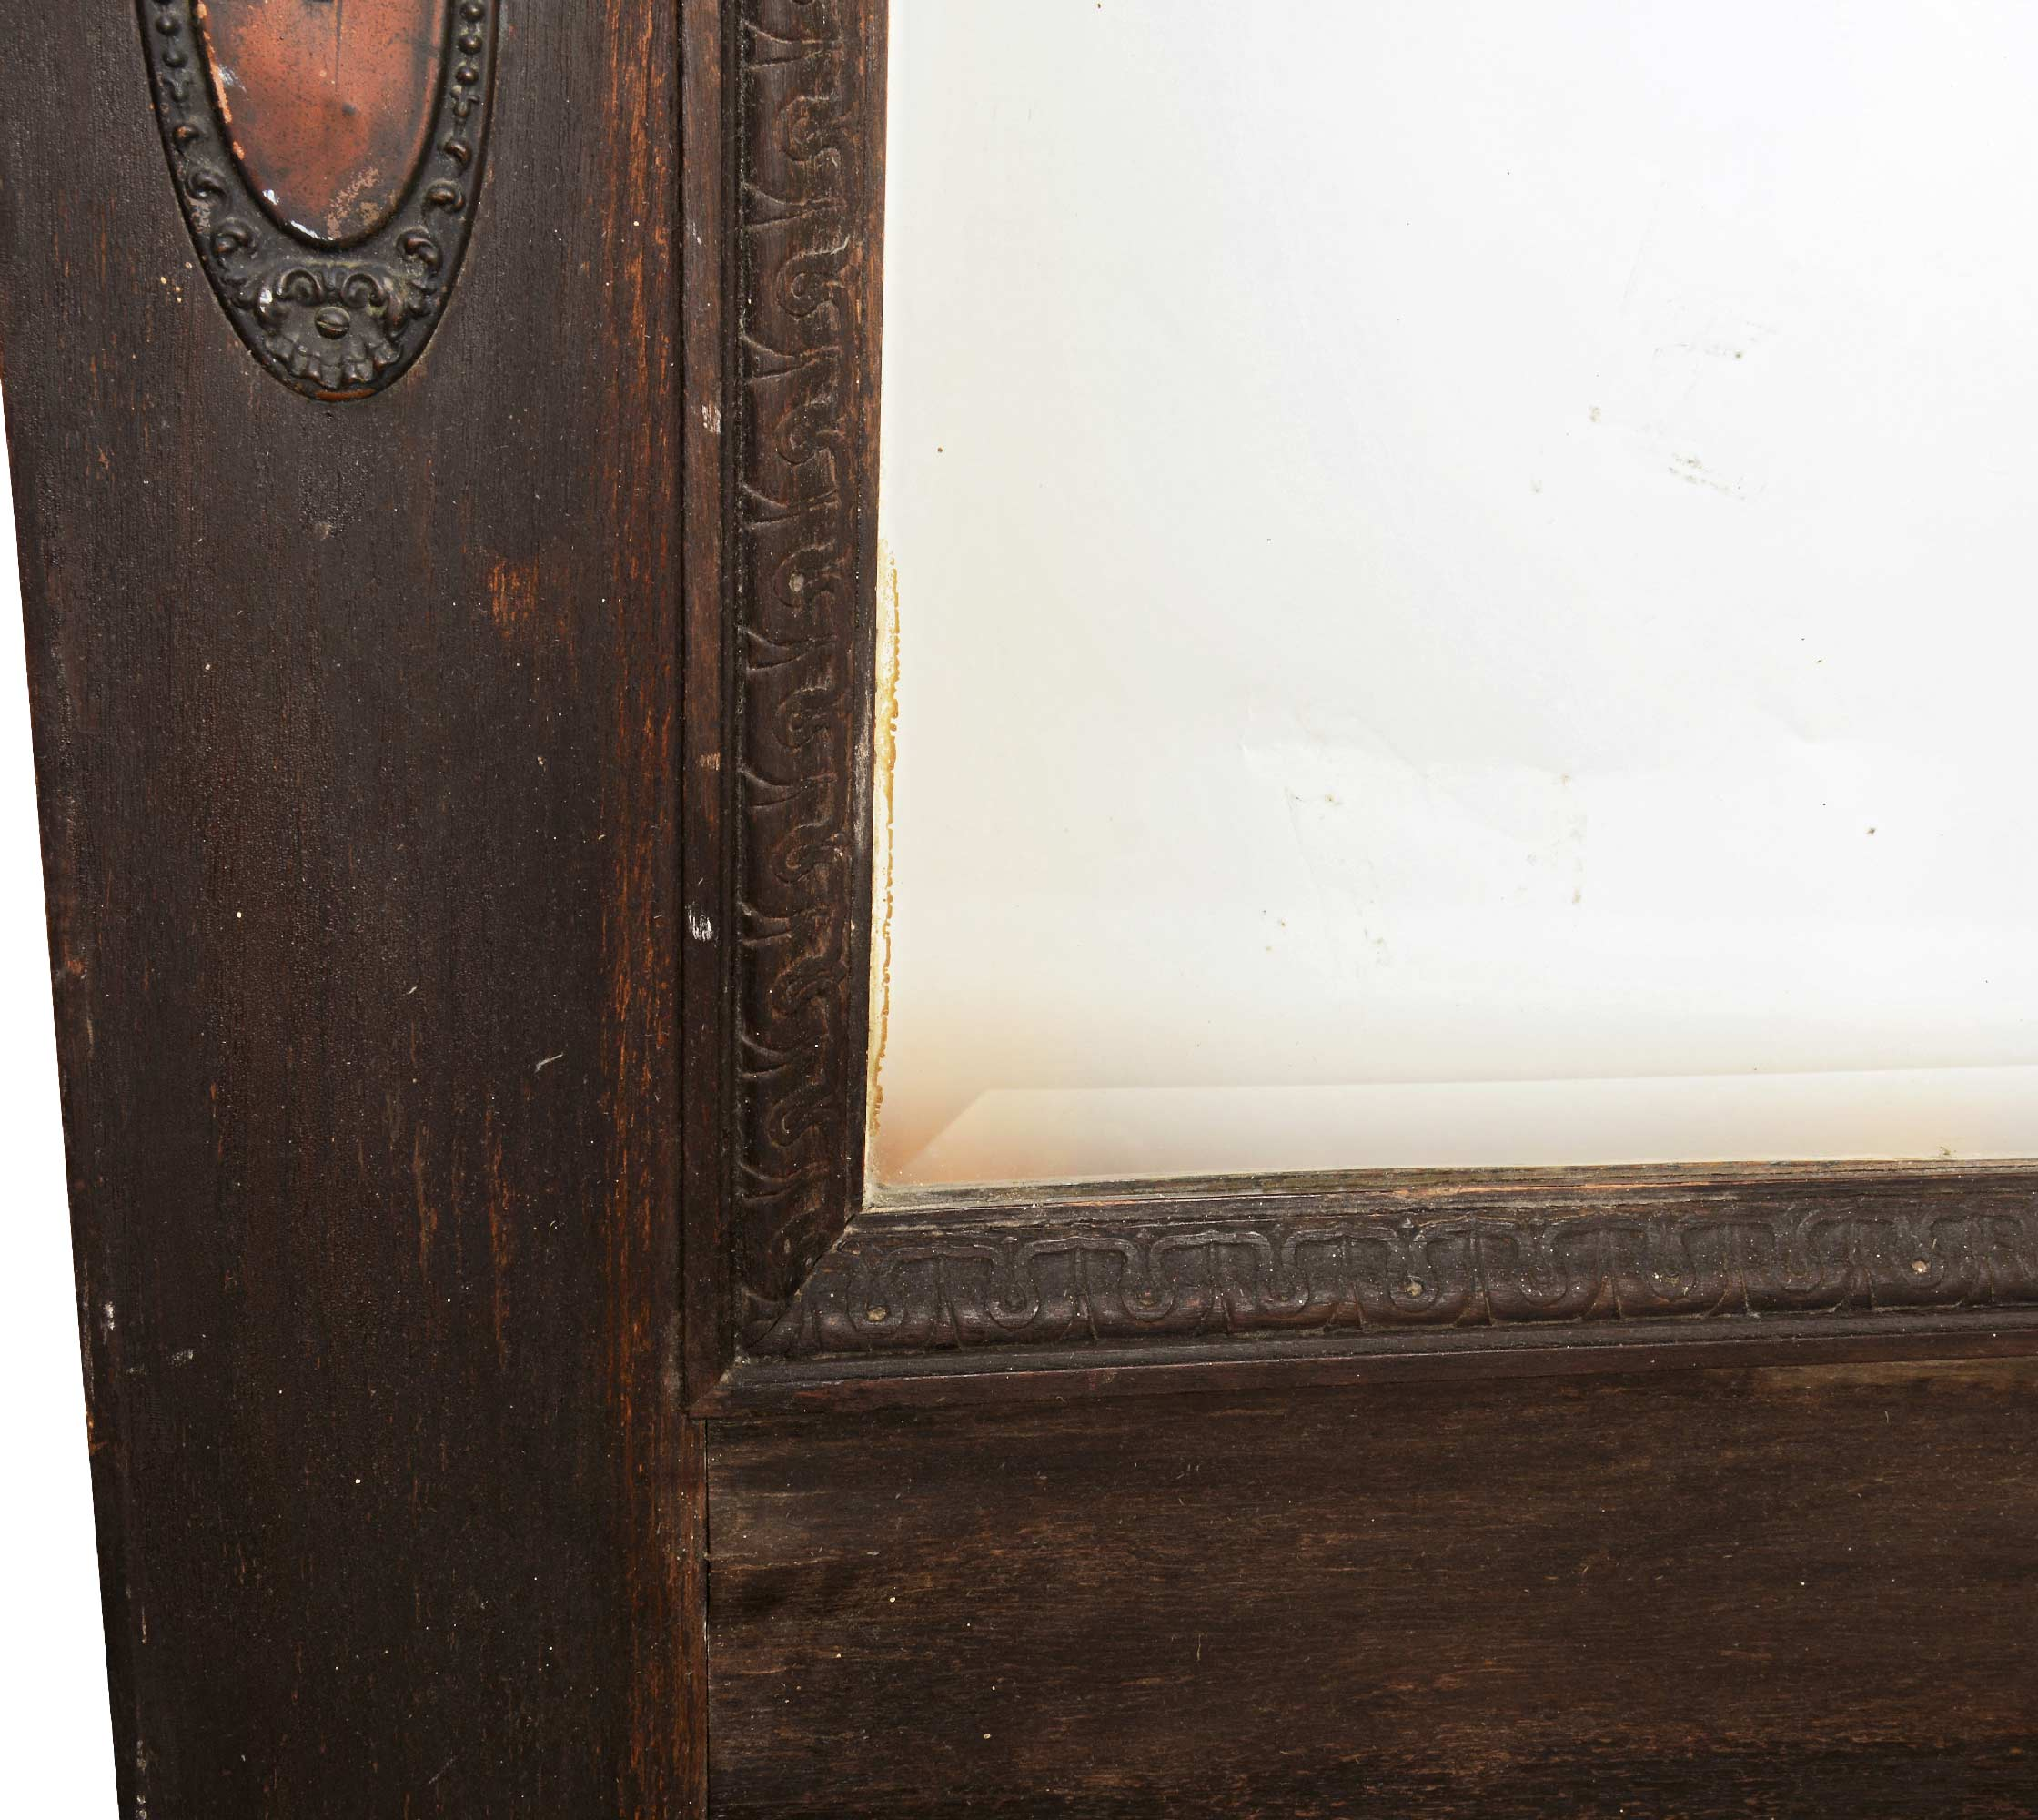 46824-full-view-door-with-beveled-glass-and-hardware-detail.jpg